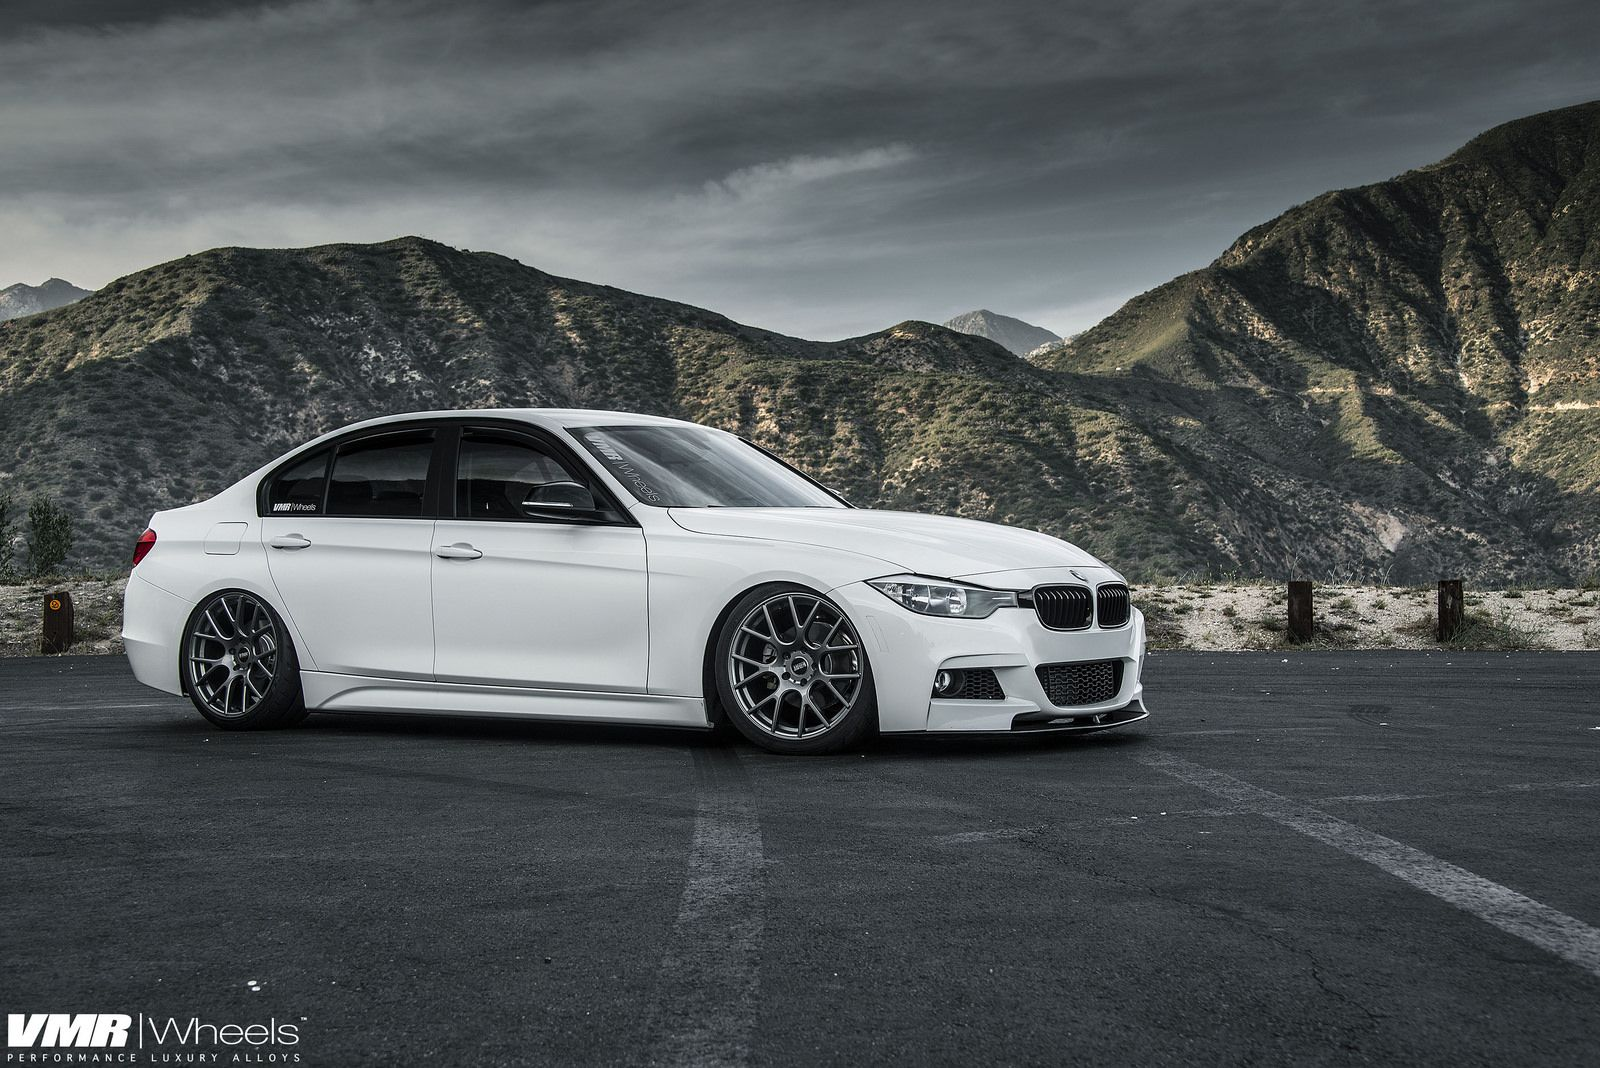 Alpine White BMW F30 328i On VMR Wheels Cars Pinterest